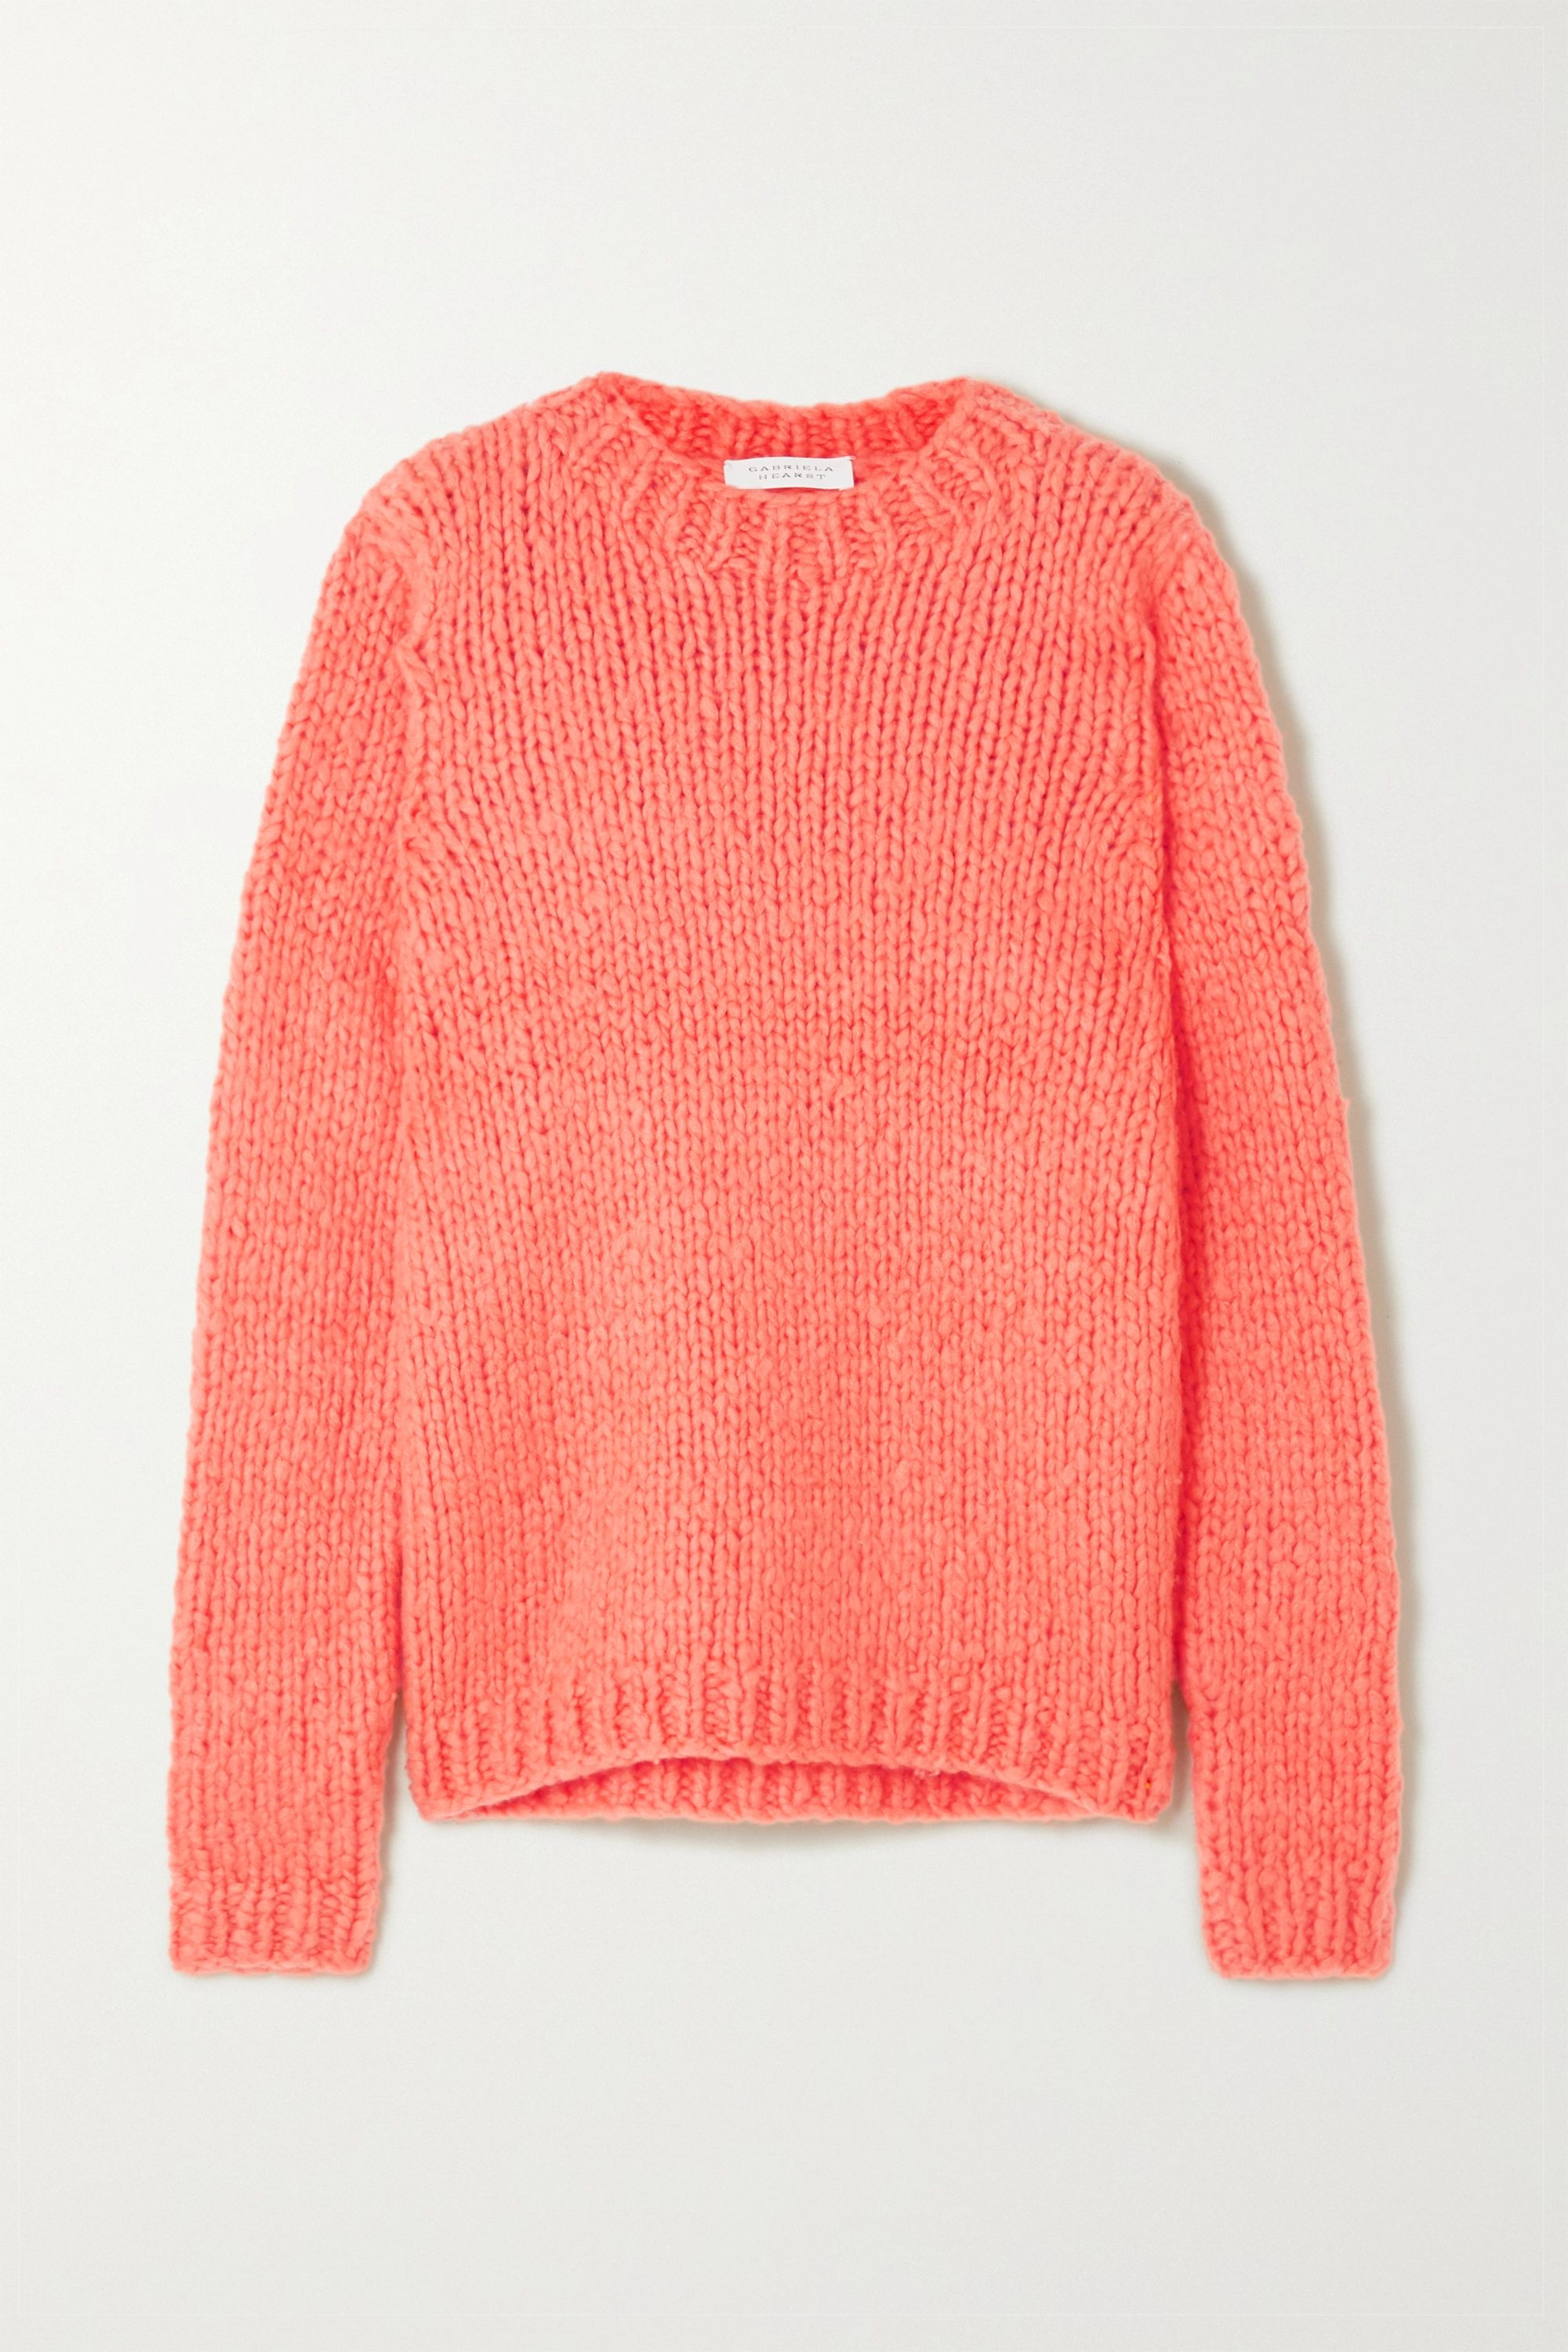 Gabriela Hearst Lawrence cashmere sweater